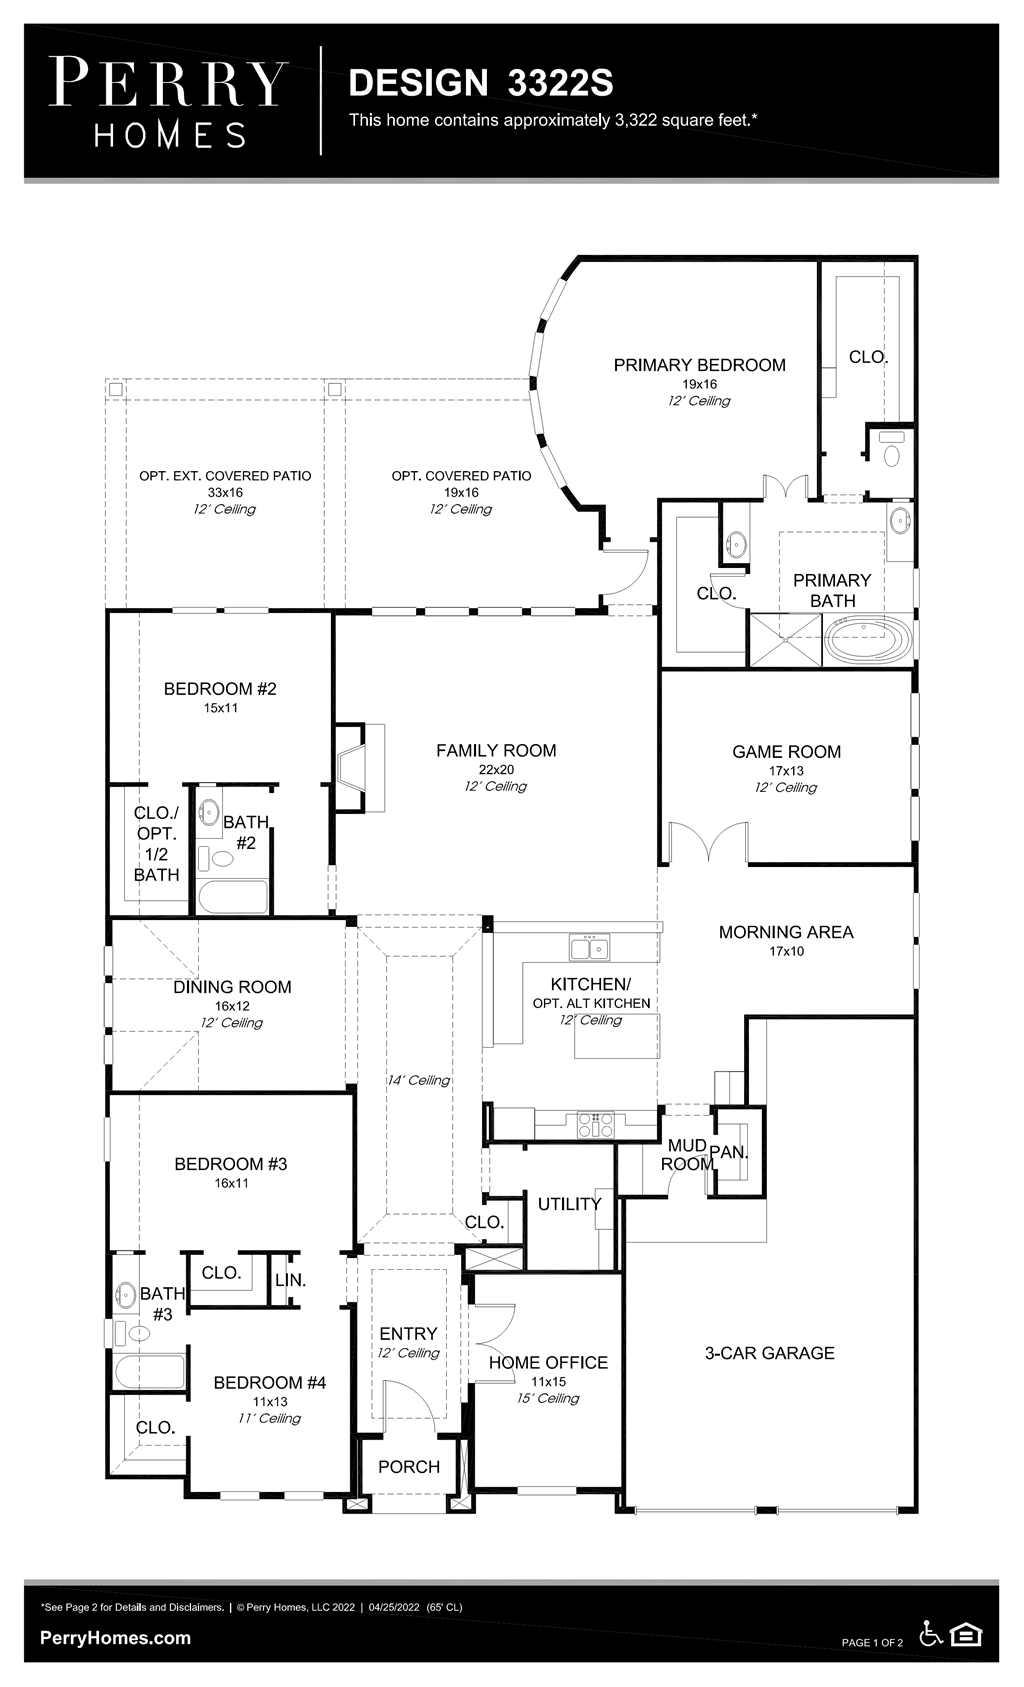 Floor Plan for 3322S